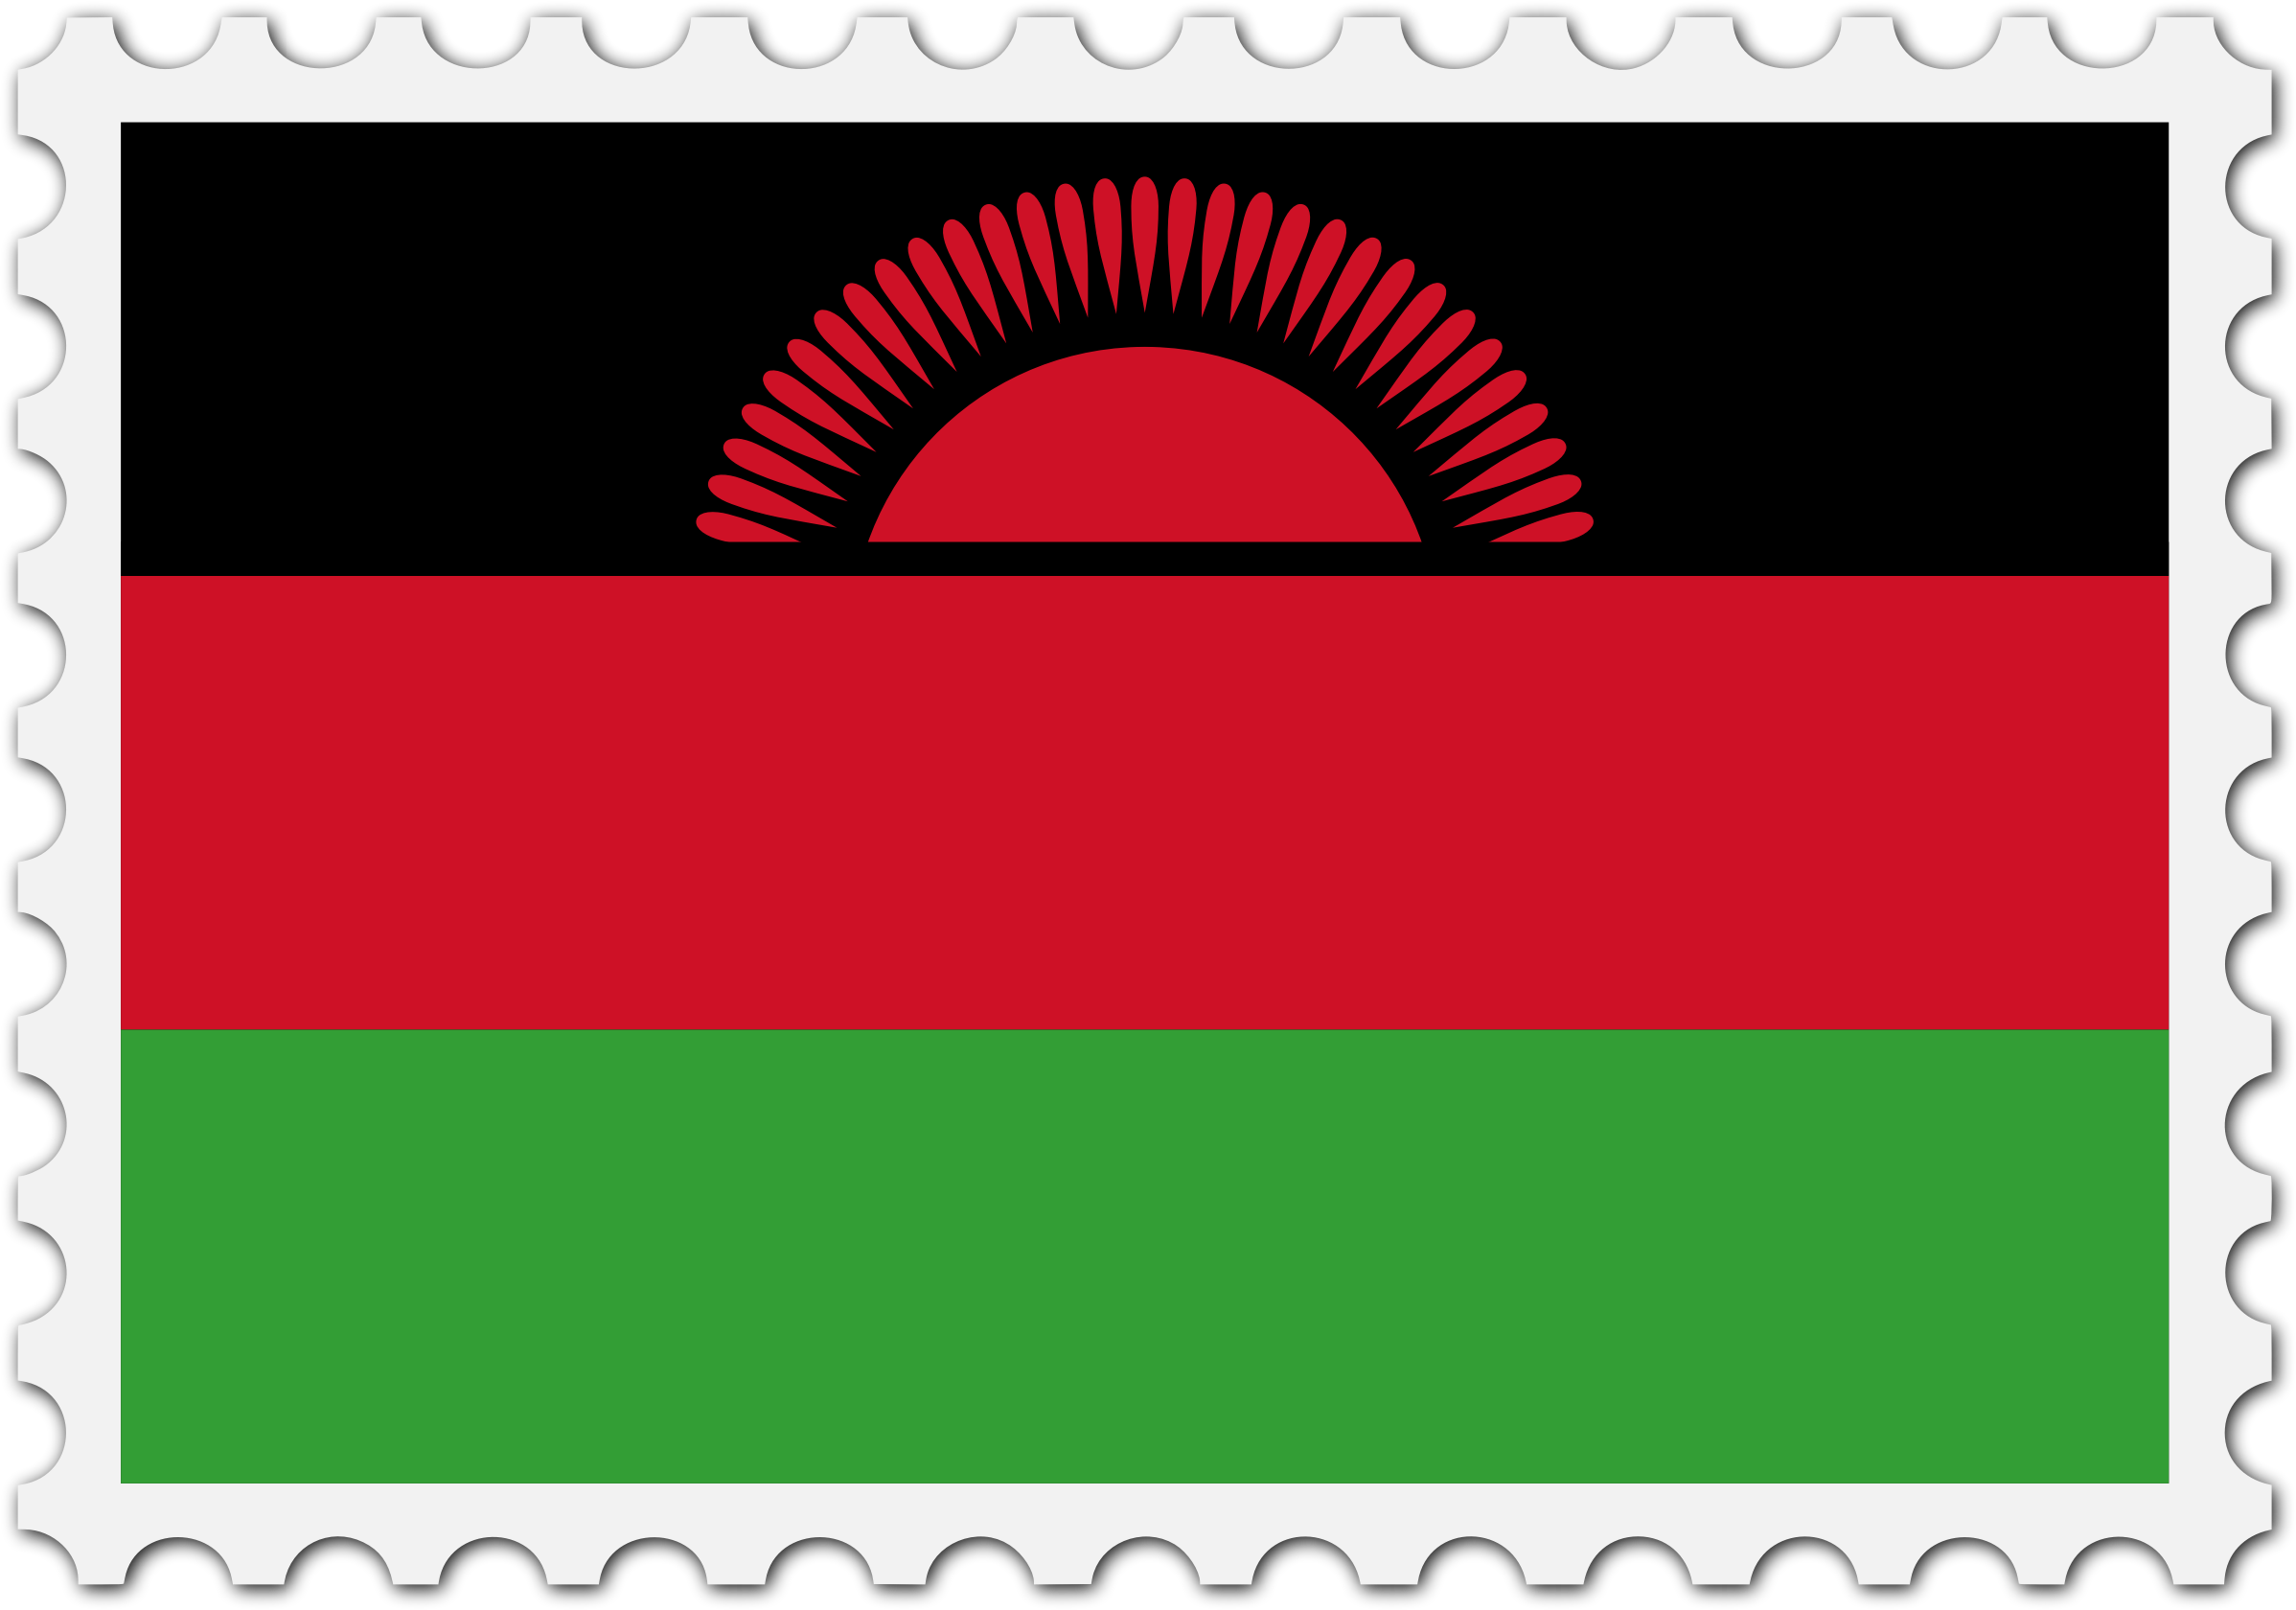 Malawi flag stamp by Firkin